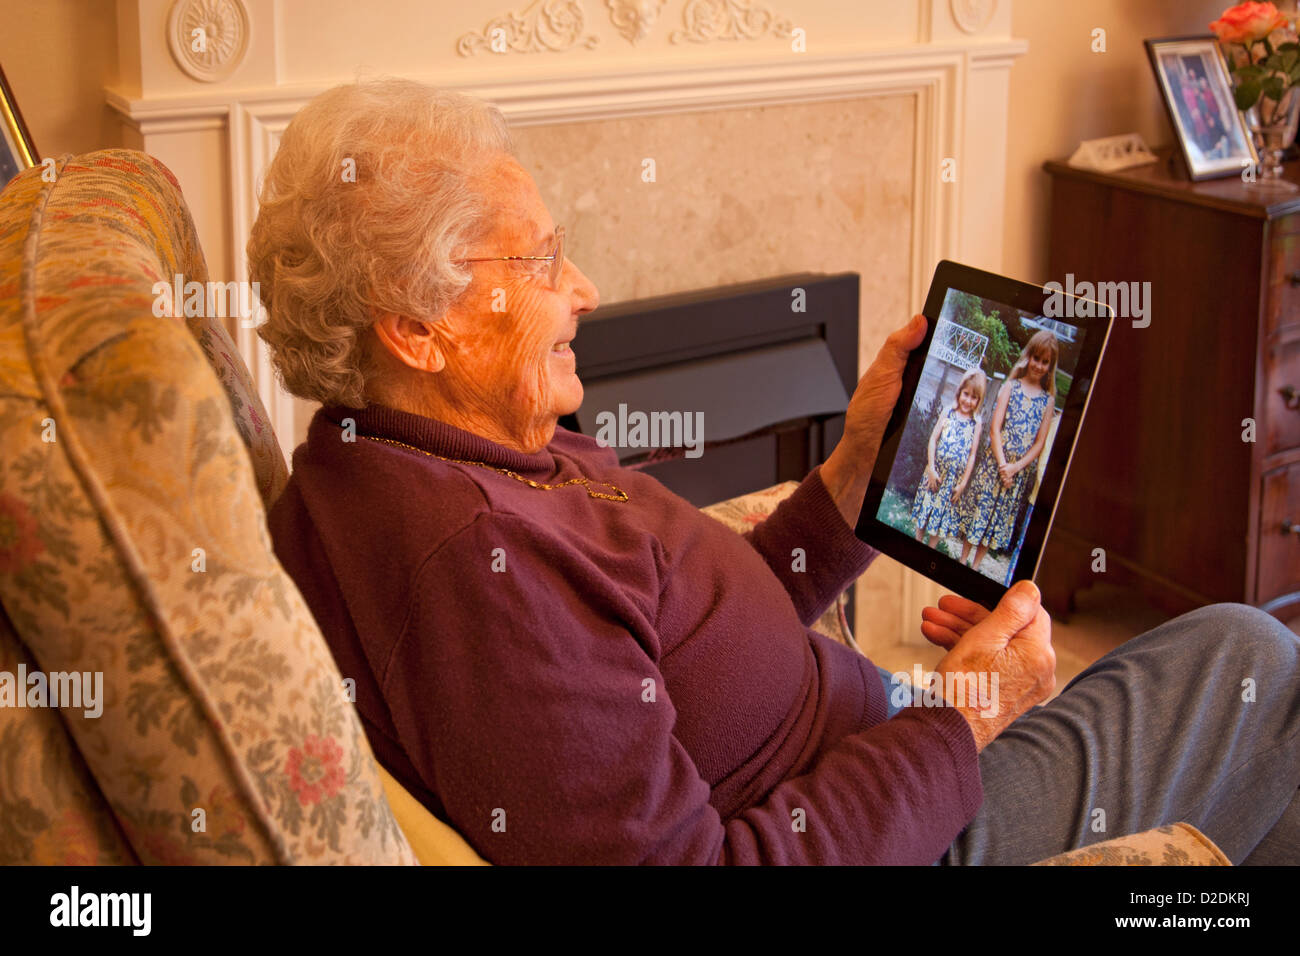 Elderly woman pensioner with glasses on apple ipad tablet at home relaxing on chair looking at photographs of grandchildren - Stock Image